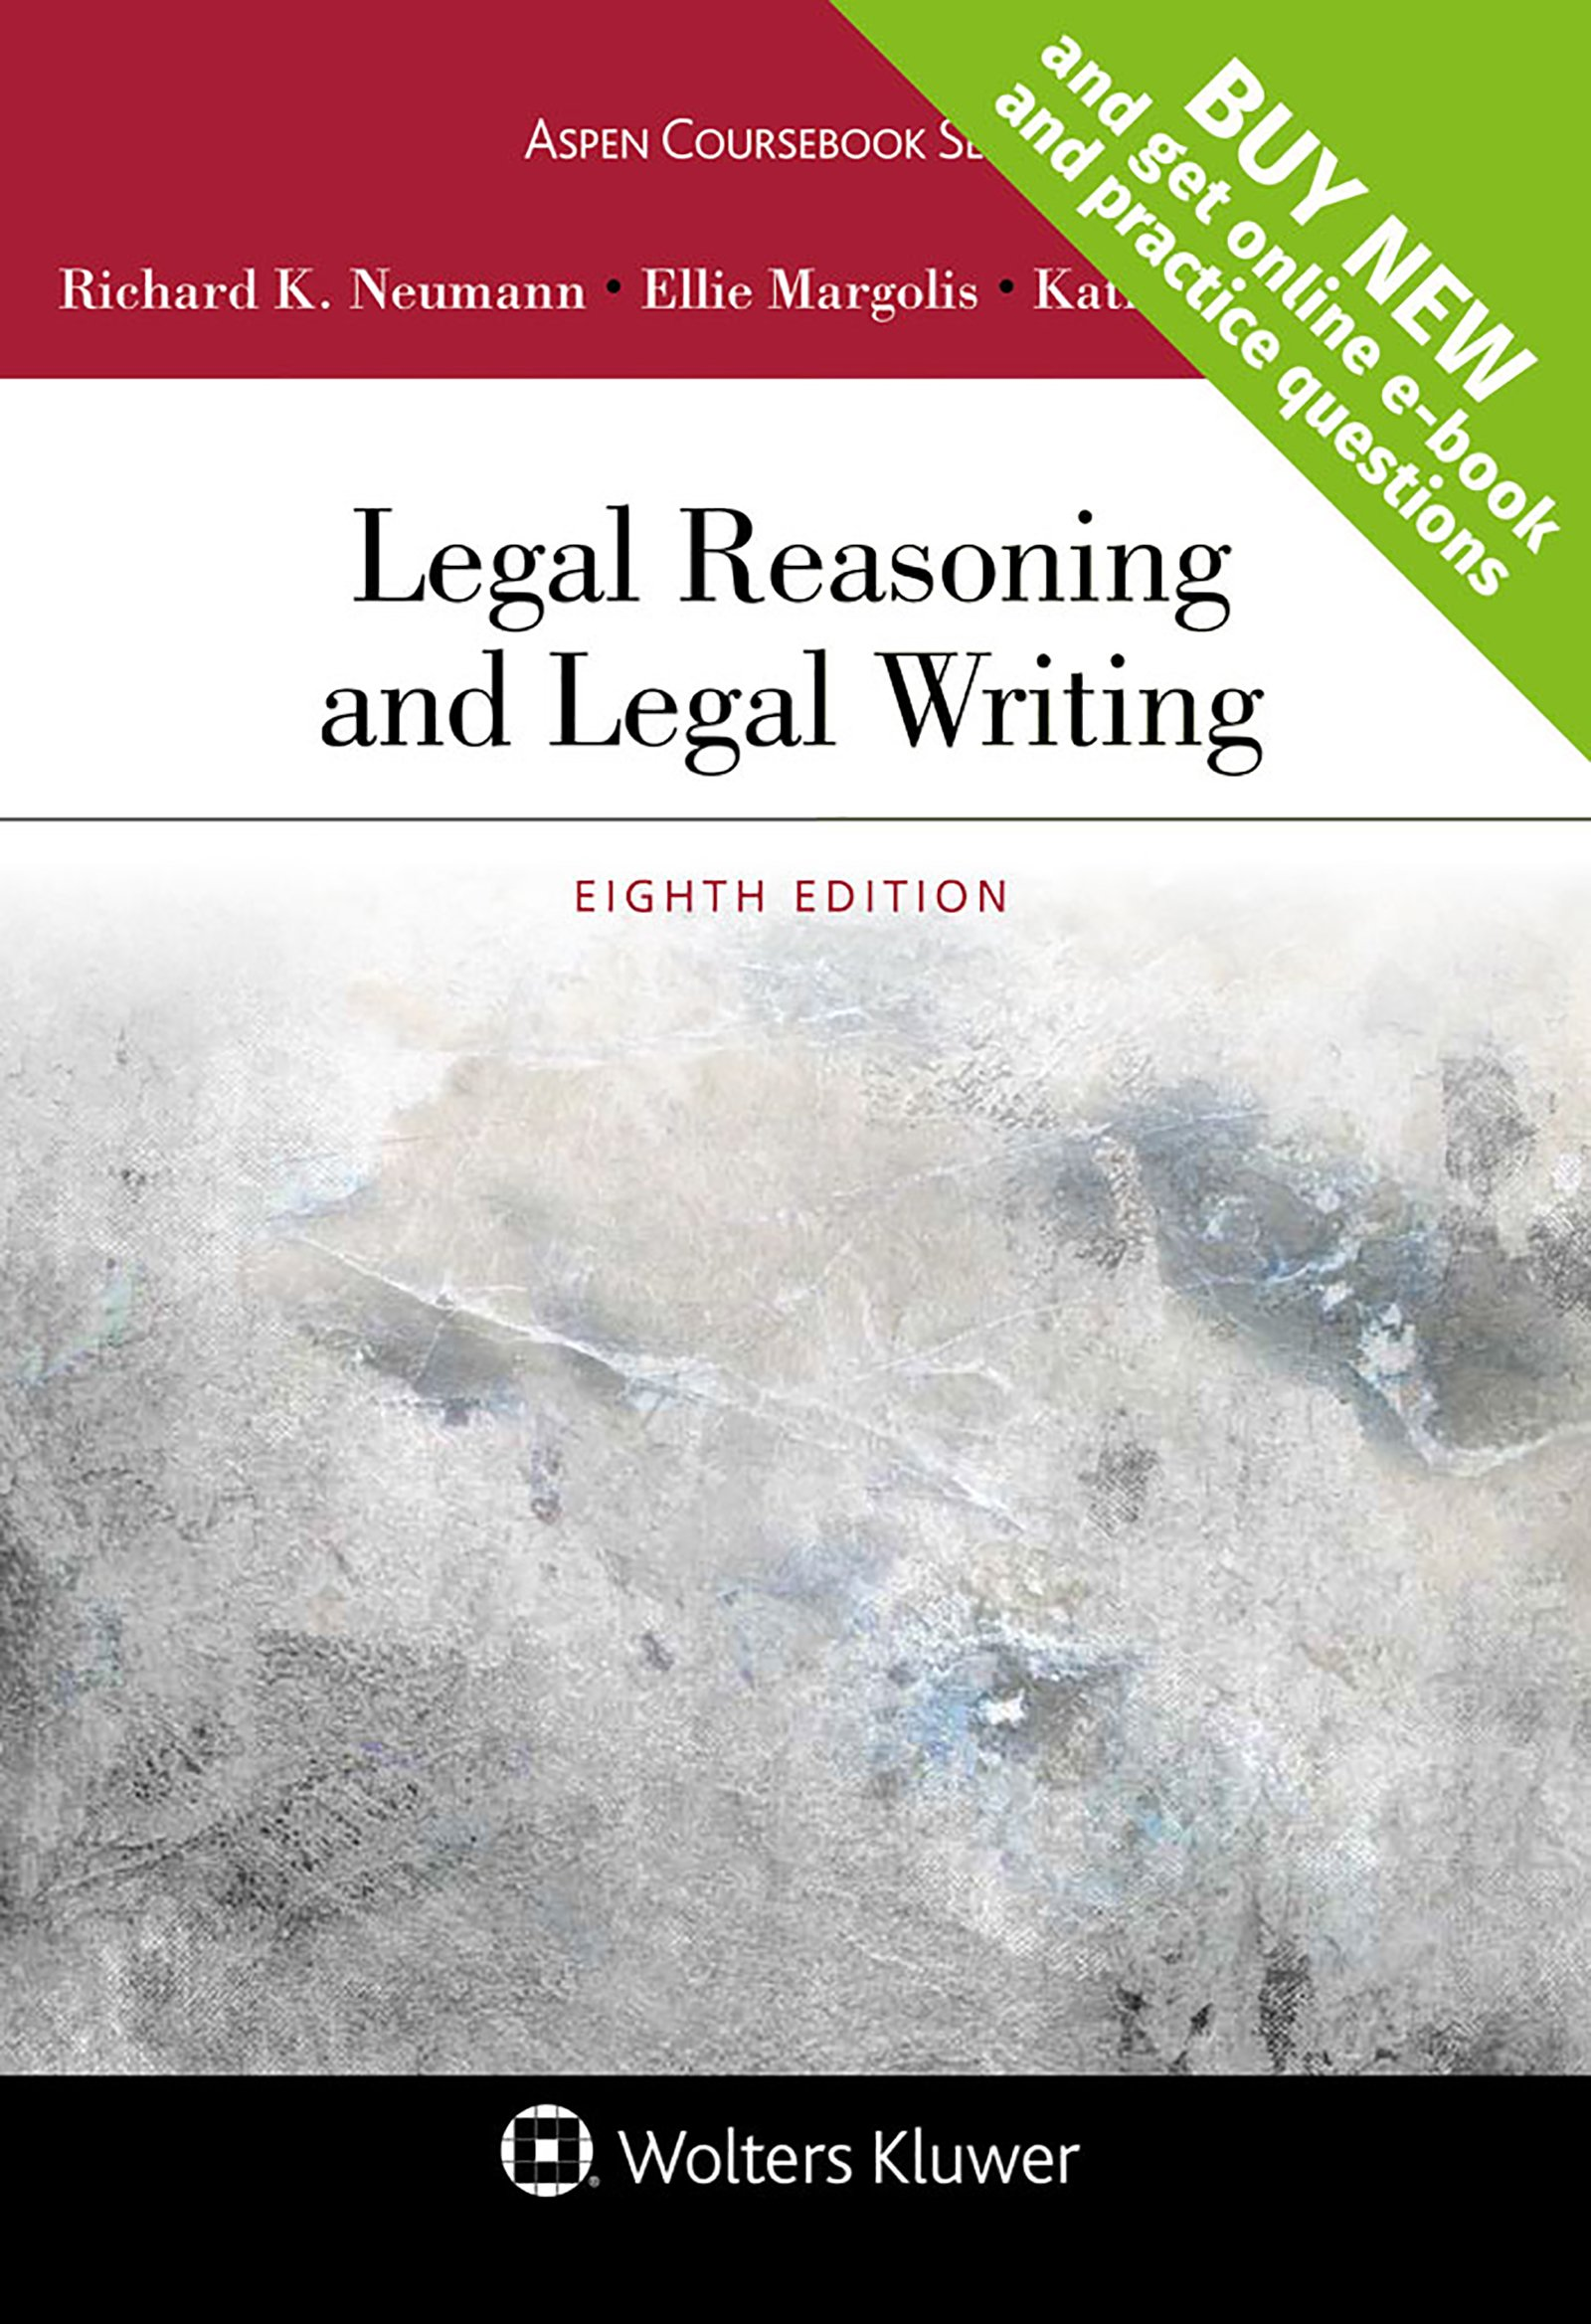 Legal Reasoning and Legal Writing (Aspen Coursebook) by Wolters Kluwer Law & Business